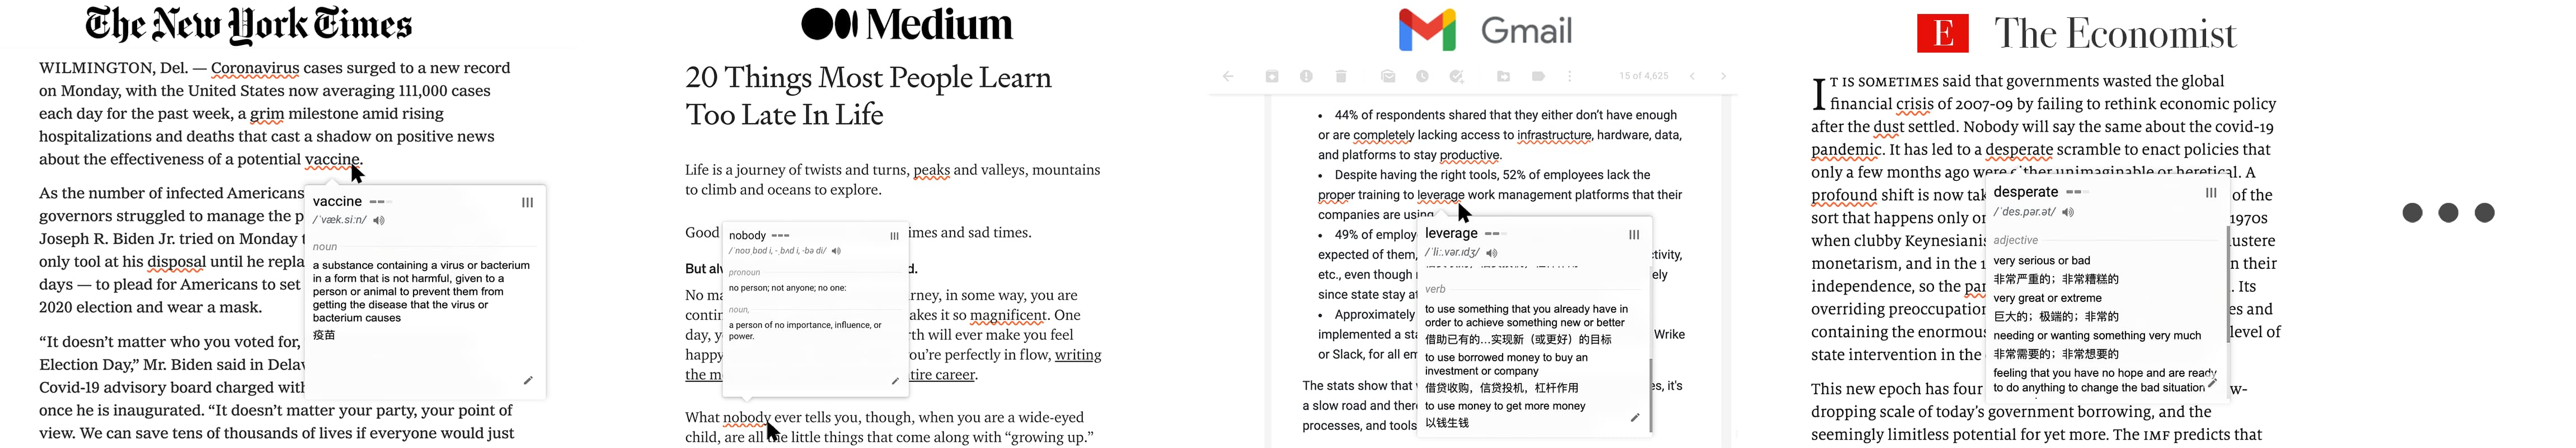 highlight words on The New York Times, Gmail, Medium, etc.